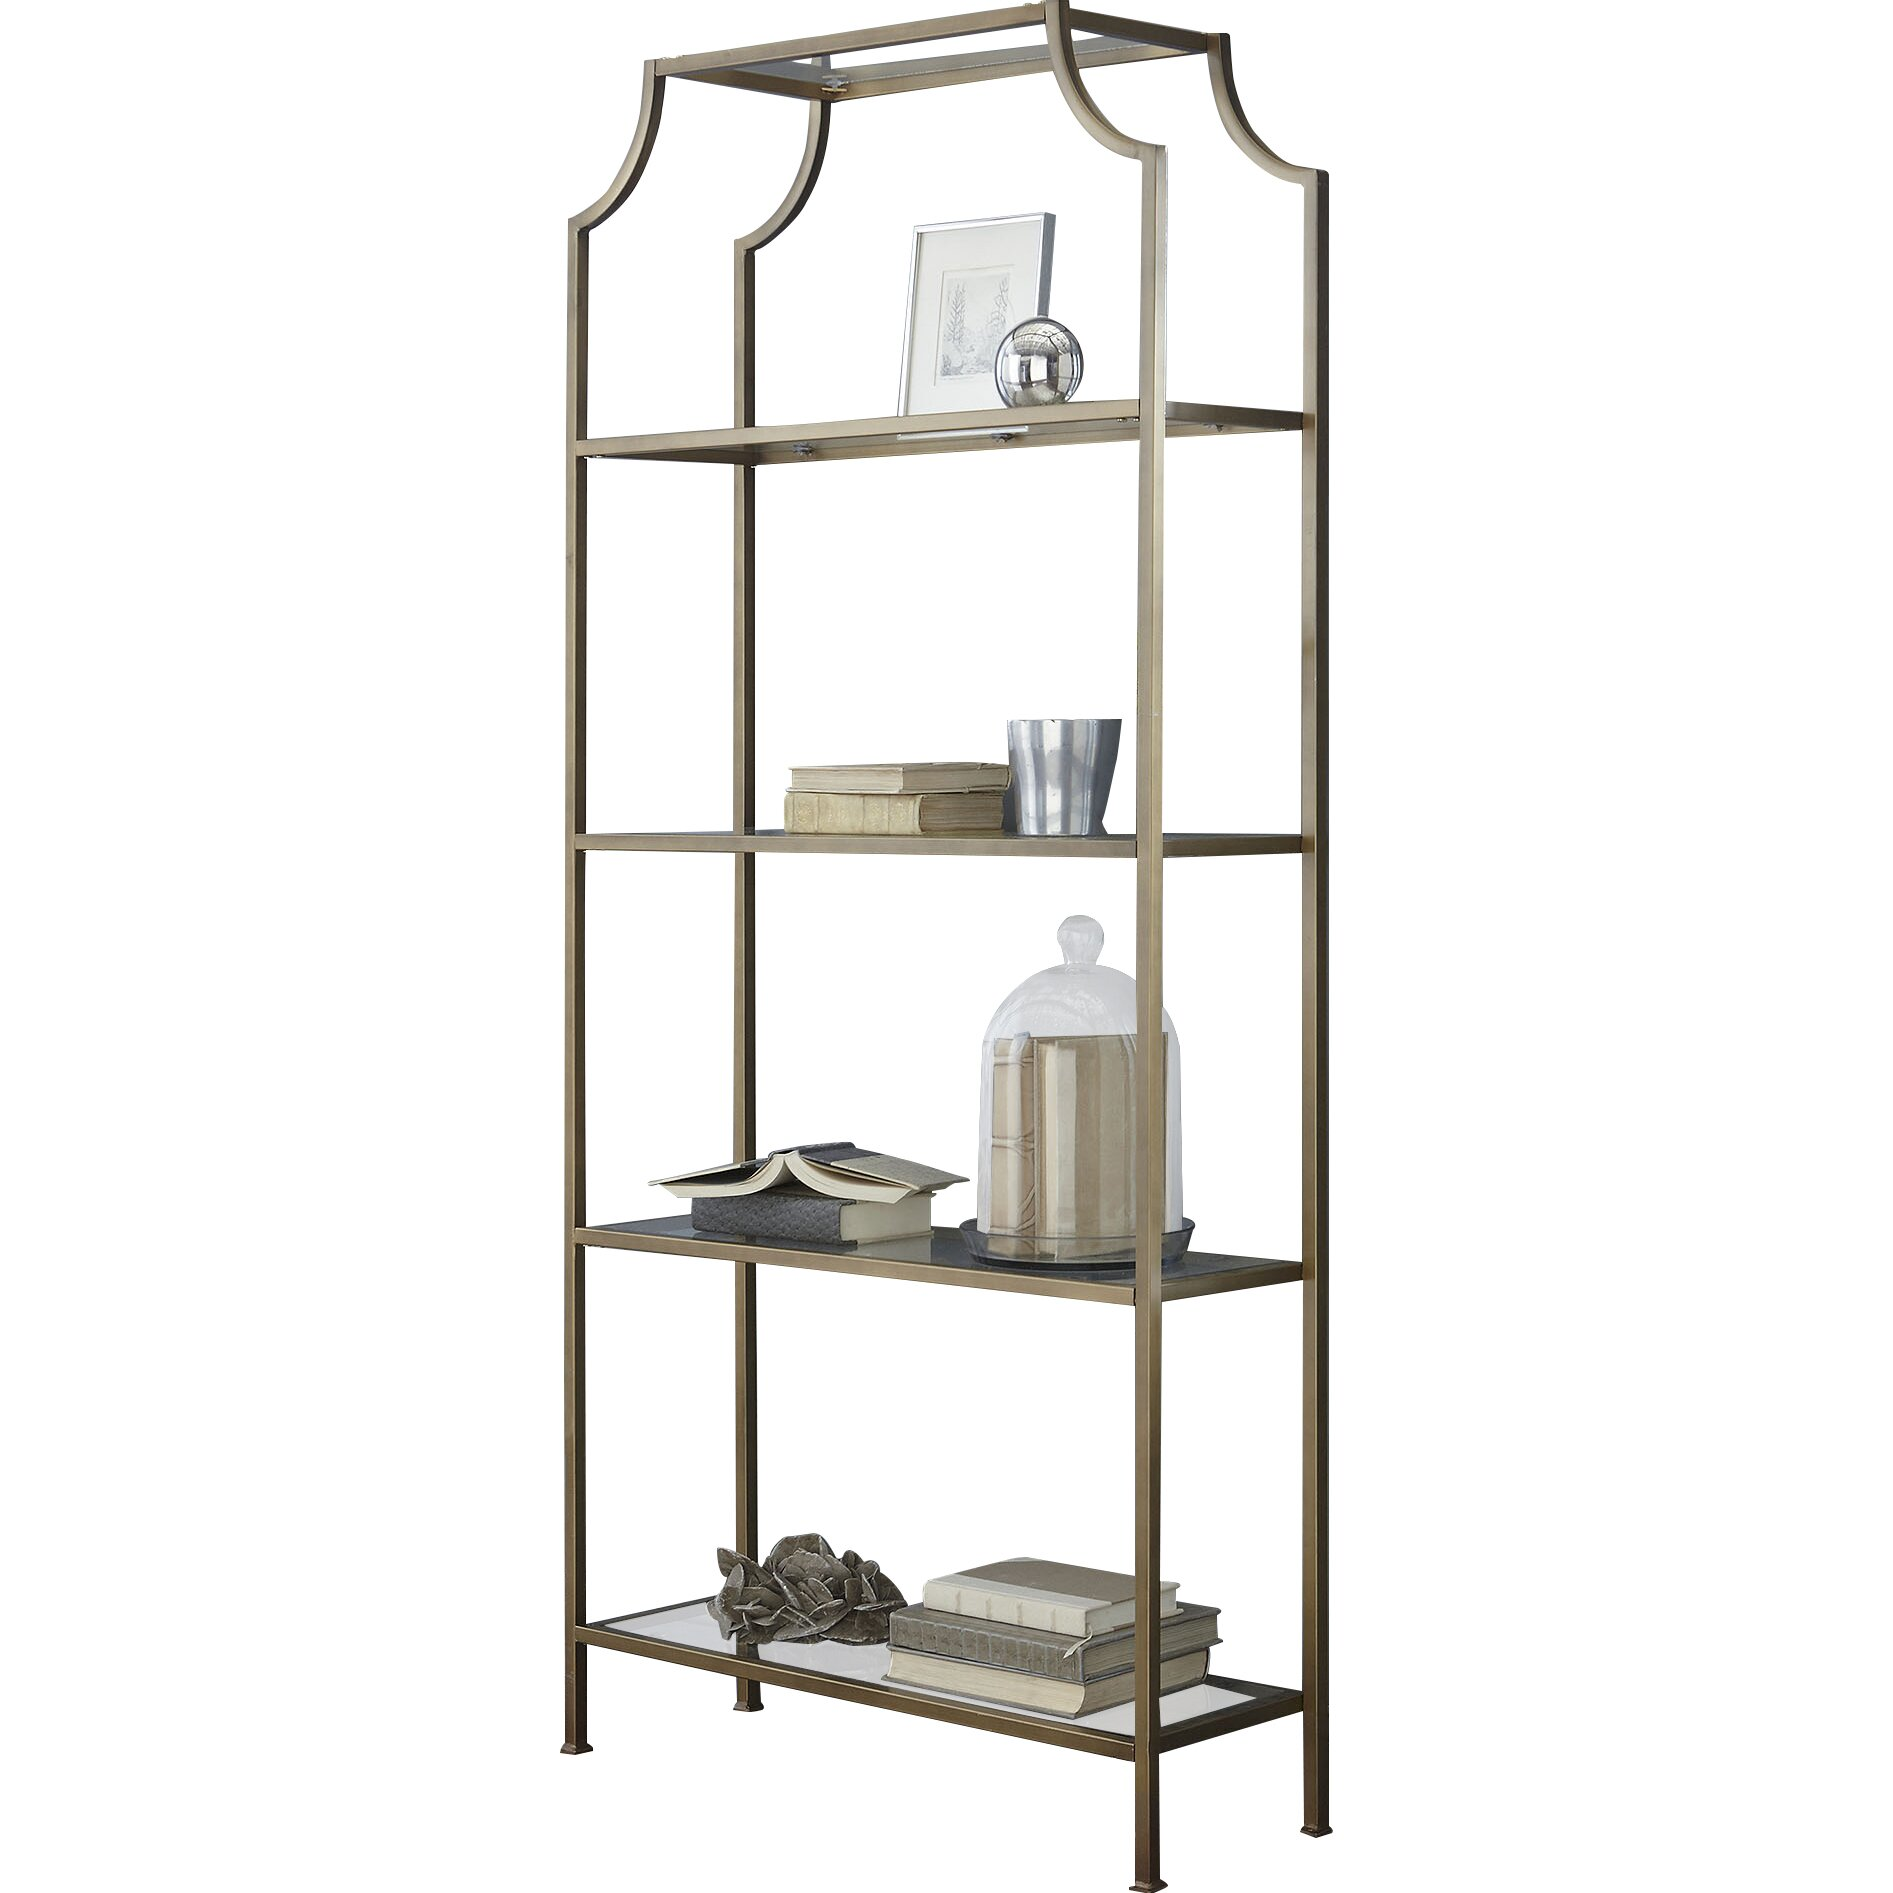 birch lane buchanan 80 etagere bookcase reviews birch. Black Bedroom Furniture Sets. Home Design Ideas